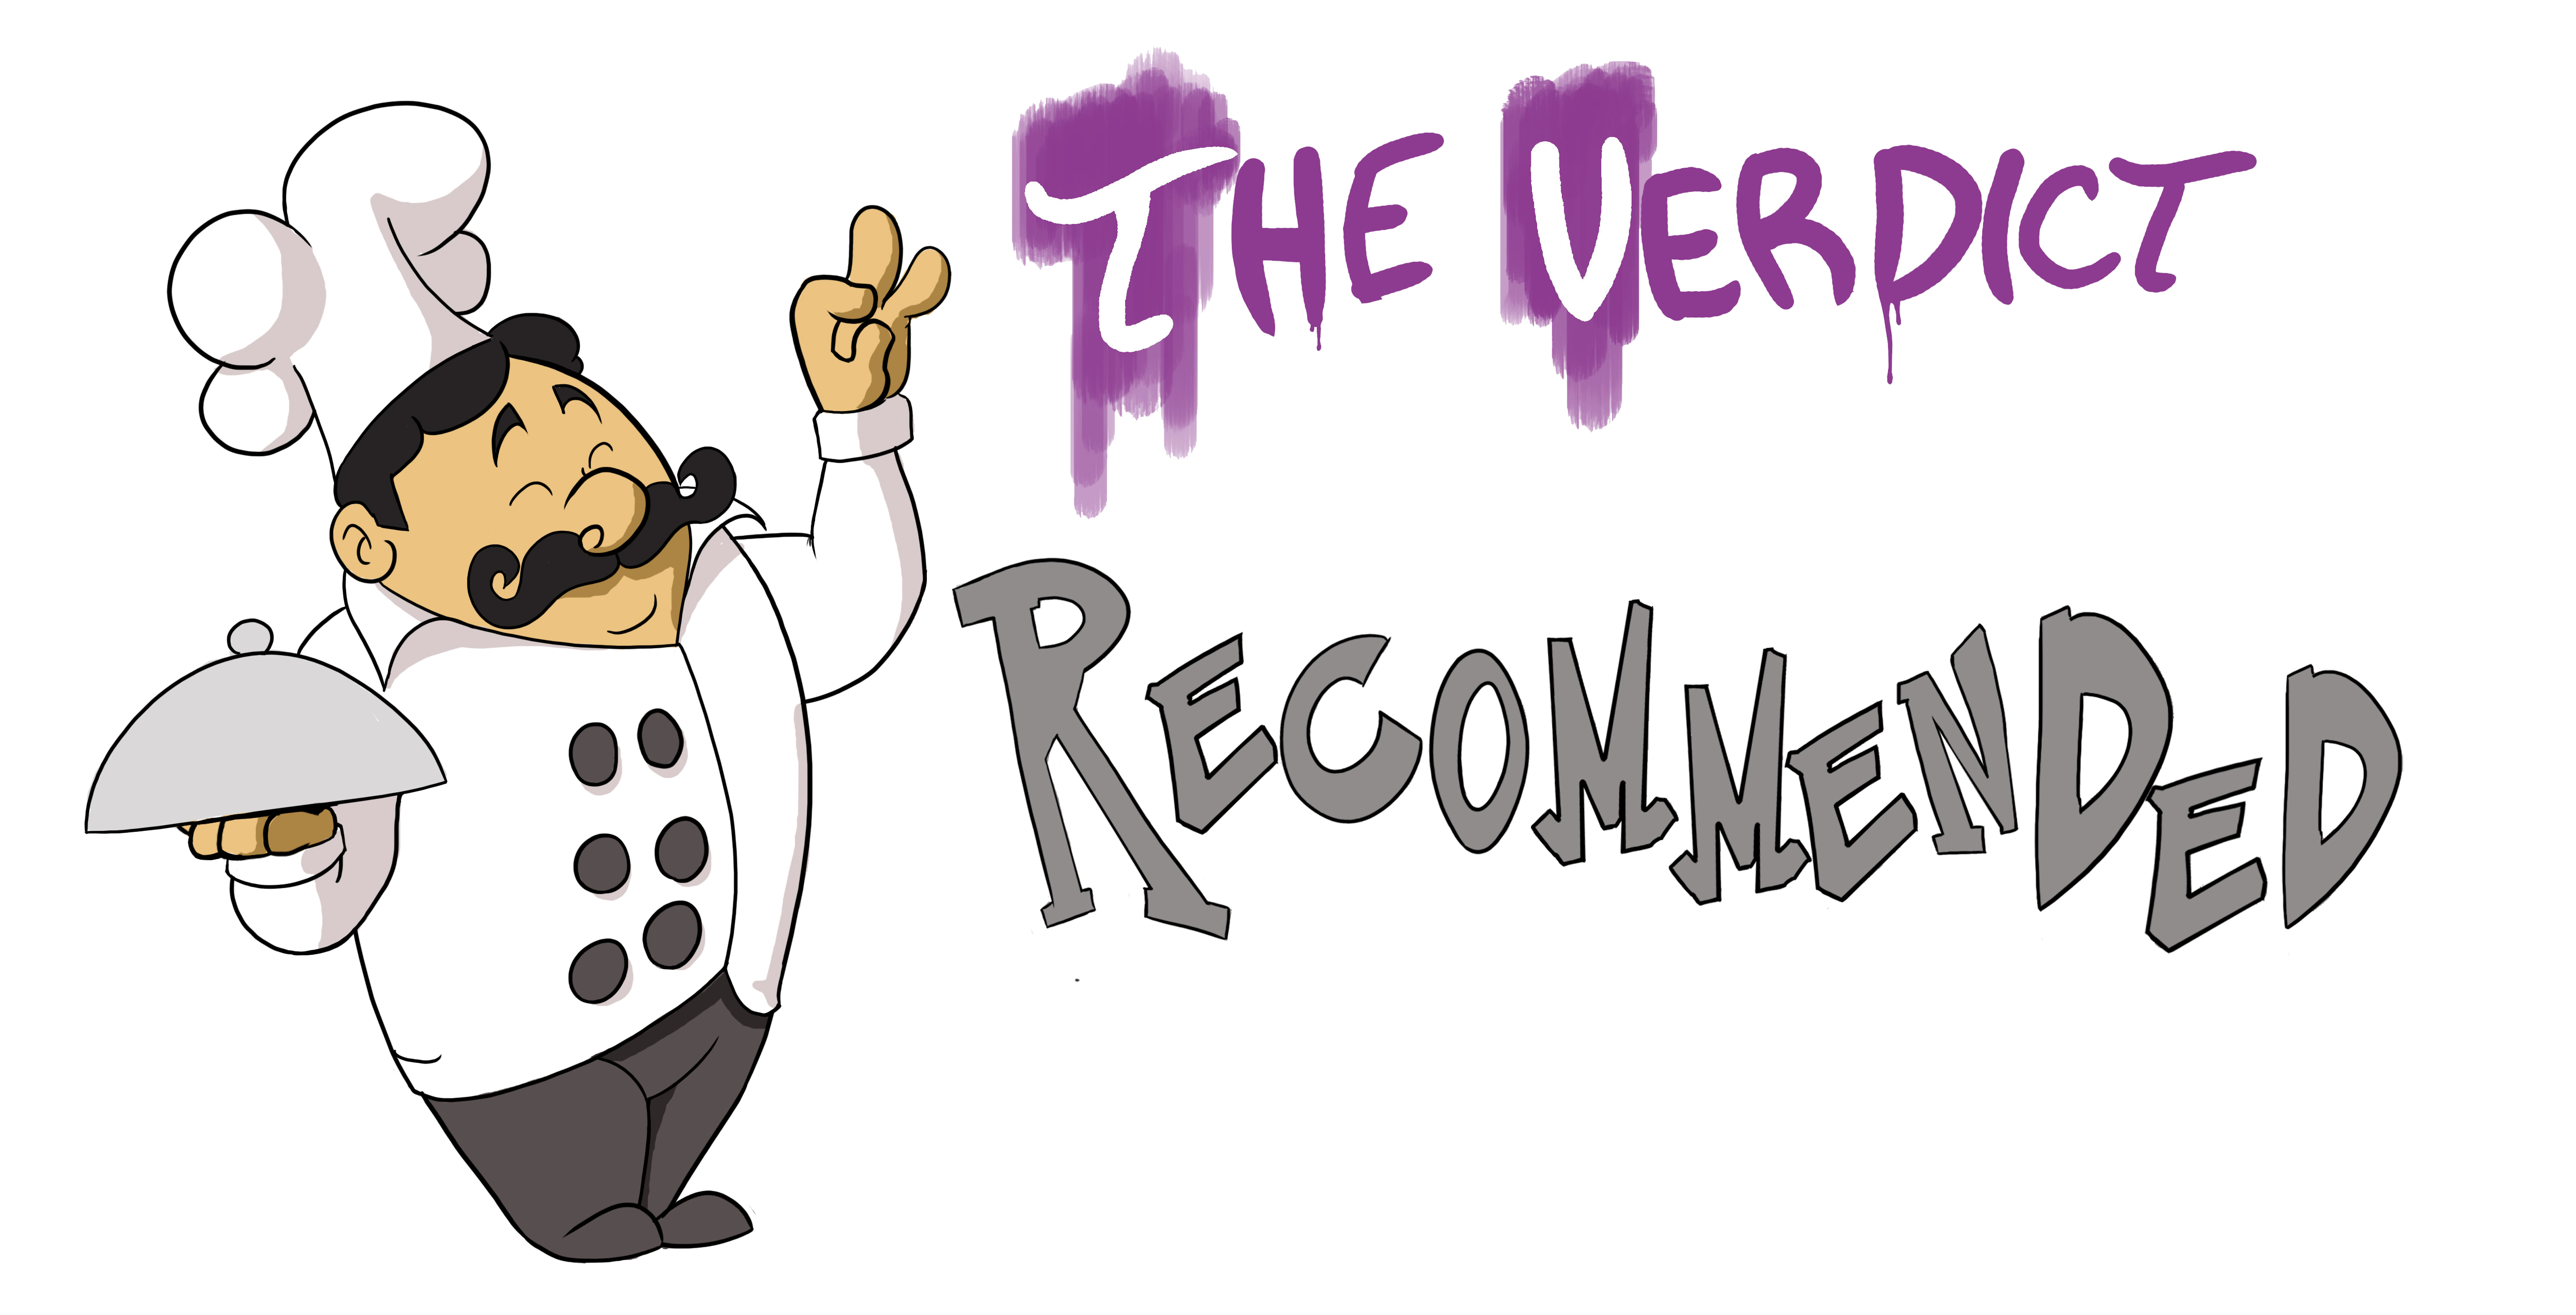 verdict_recommended